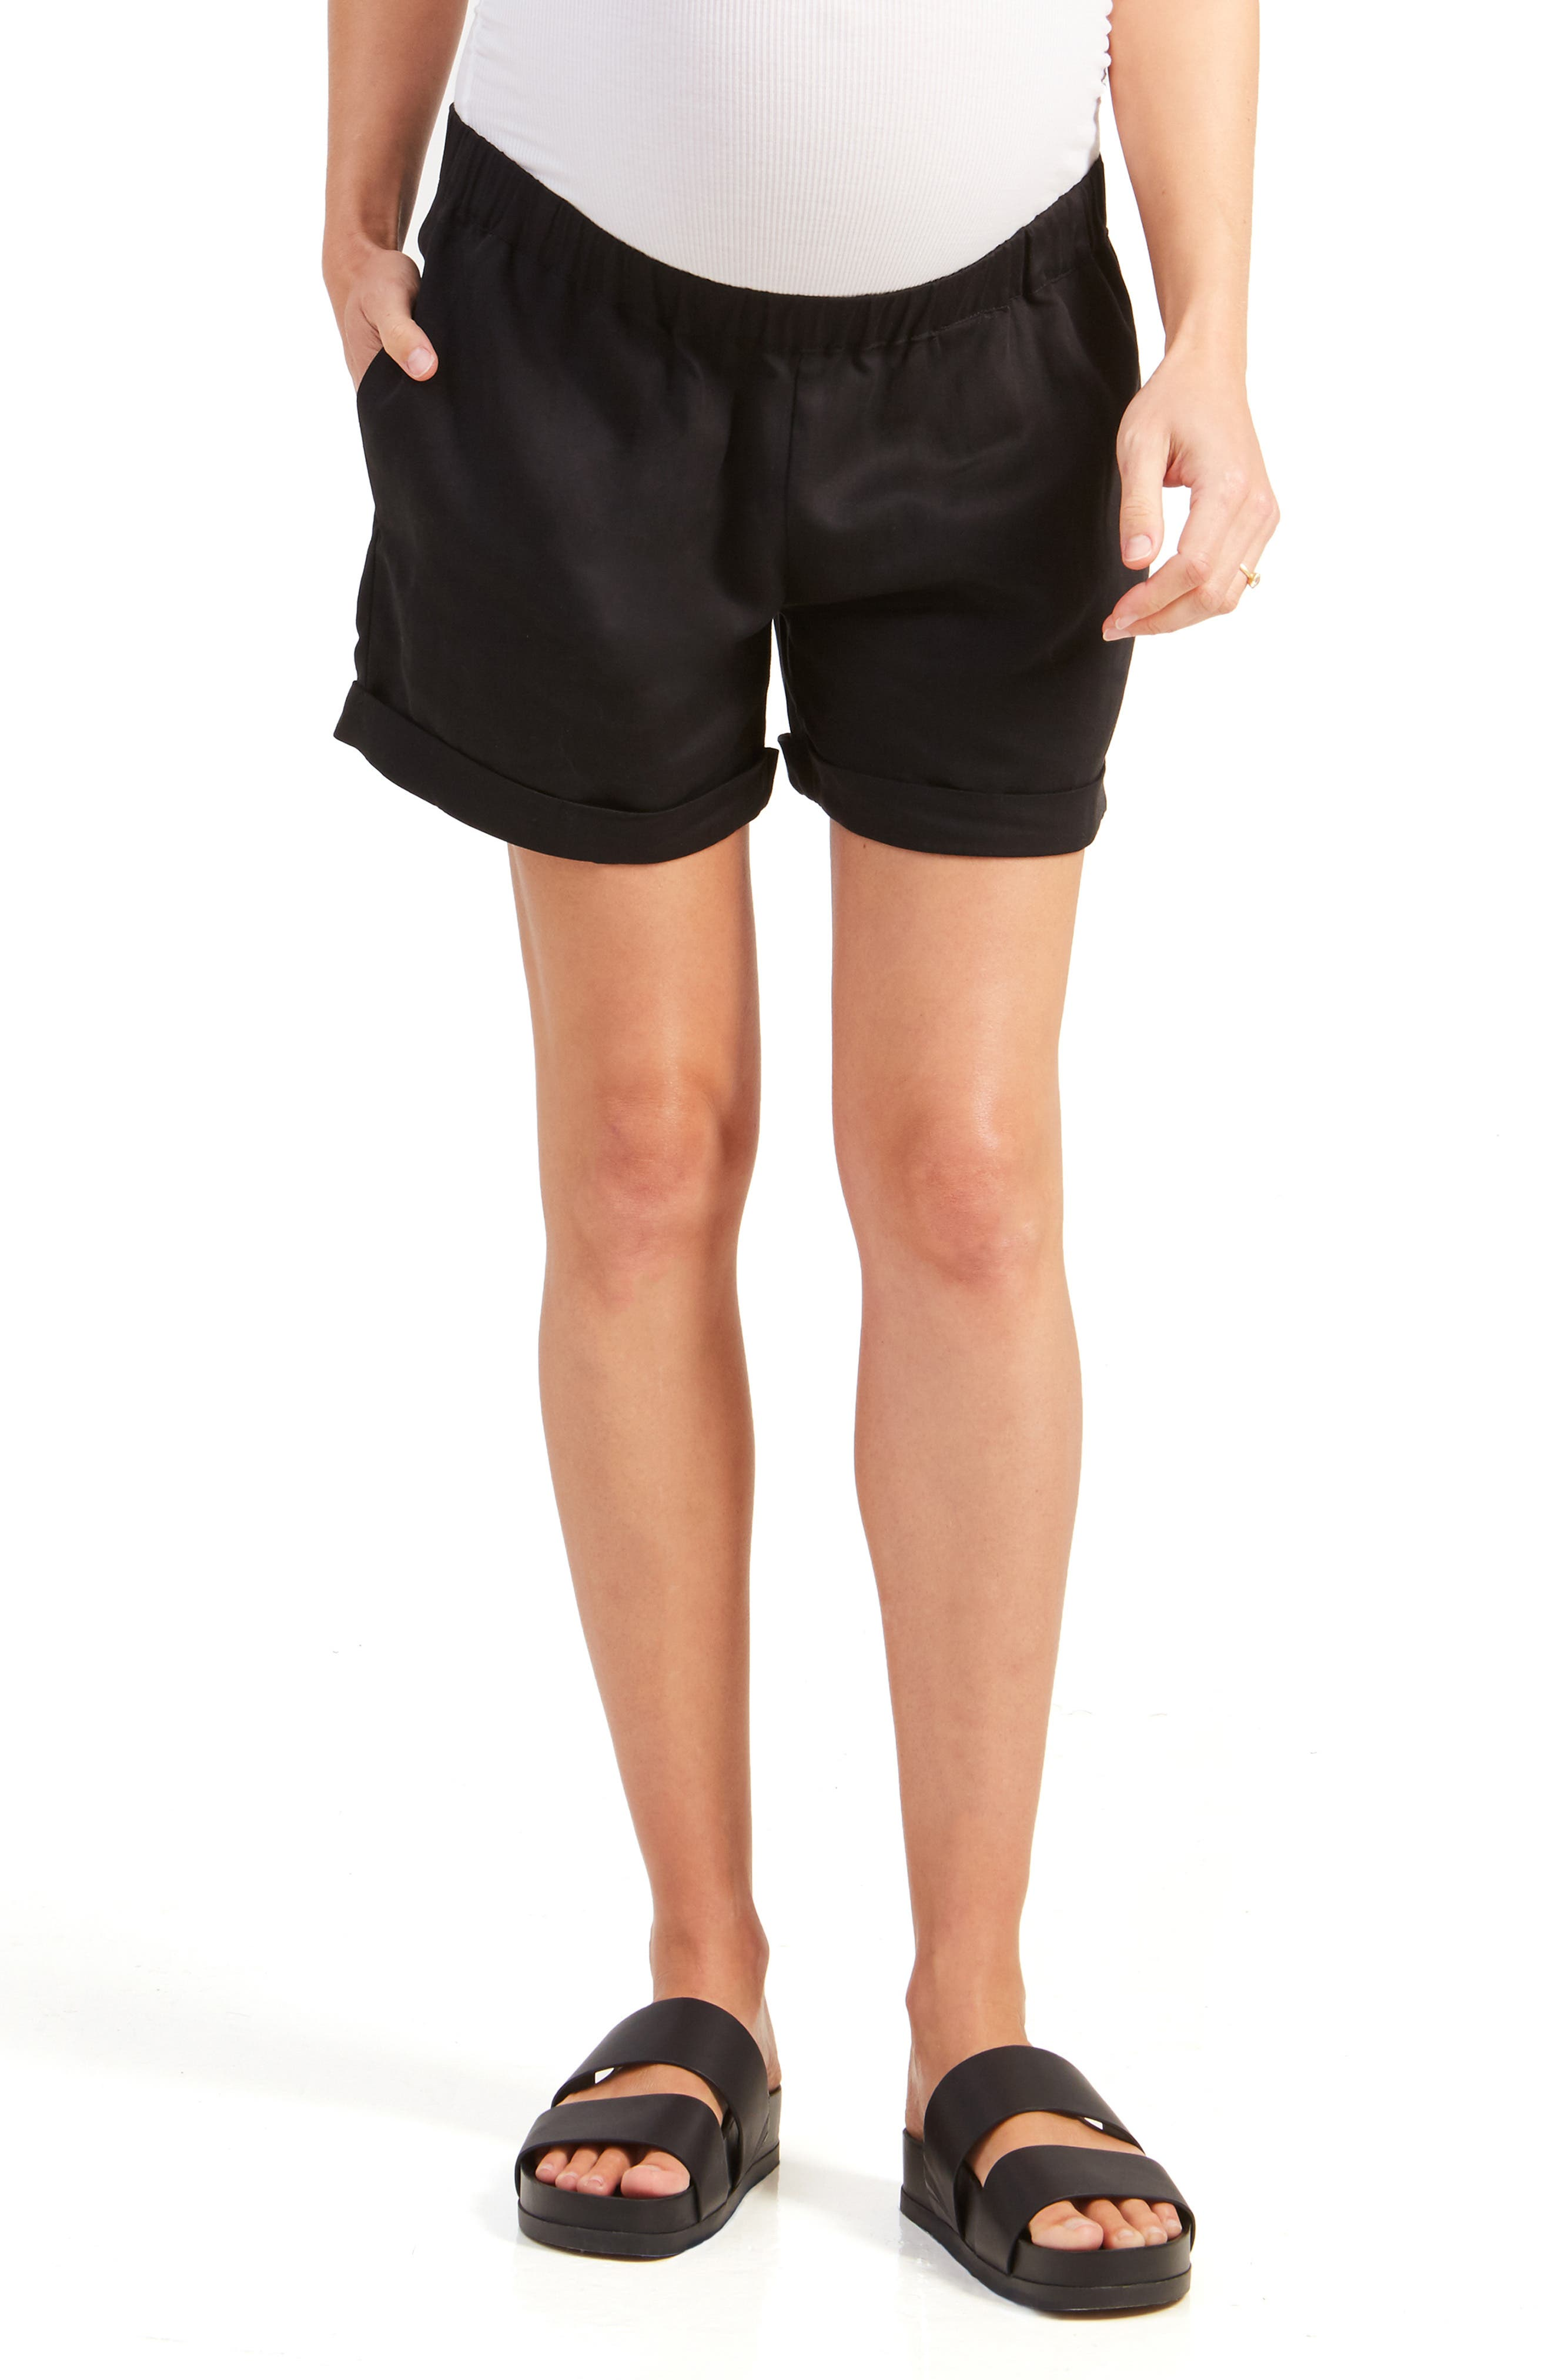 Ingrid & IsabelR Women's Ingrid & Isabel Under Belly Elastic Waist Shorts,  Large - Black